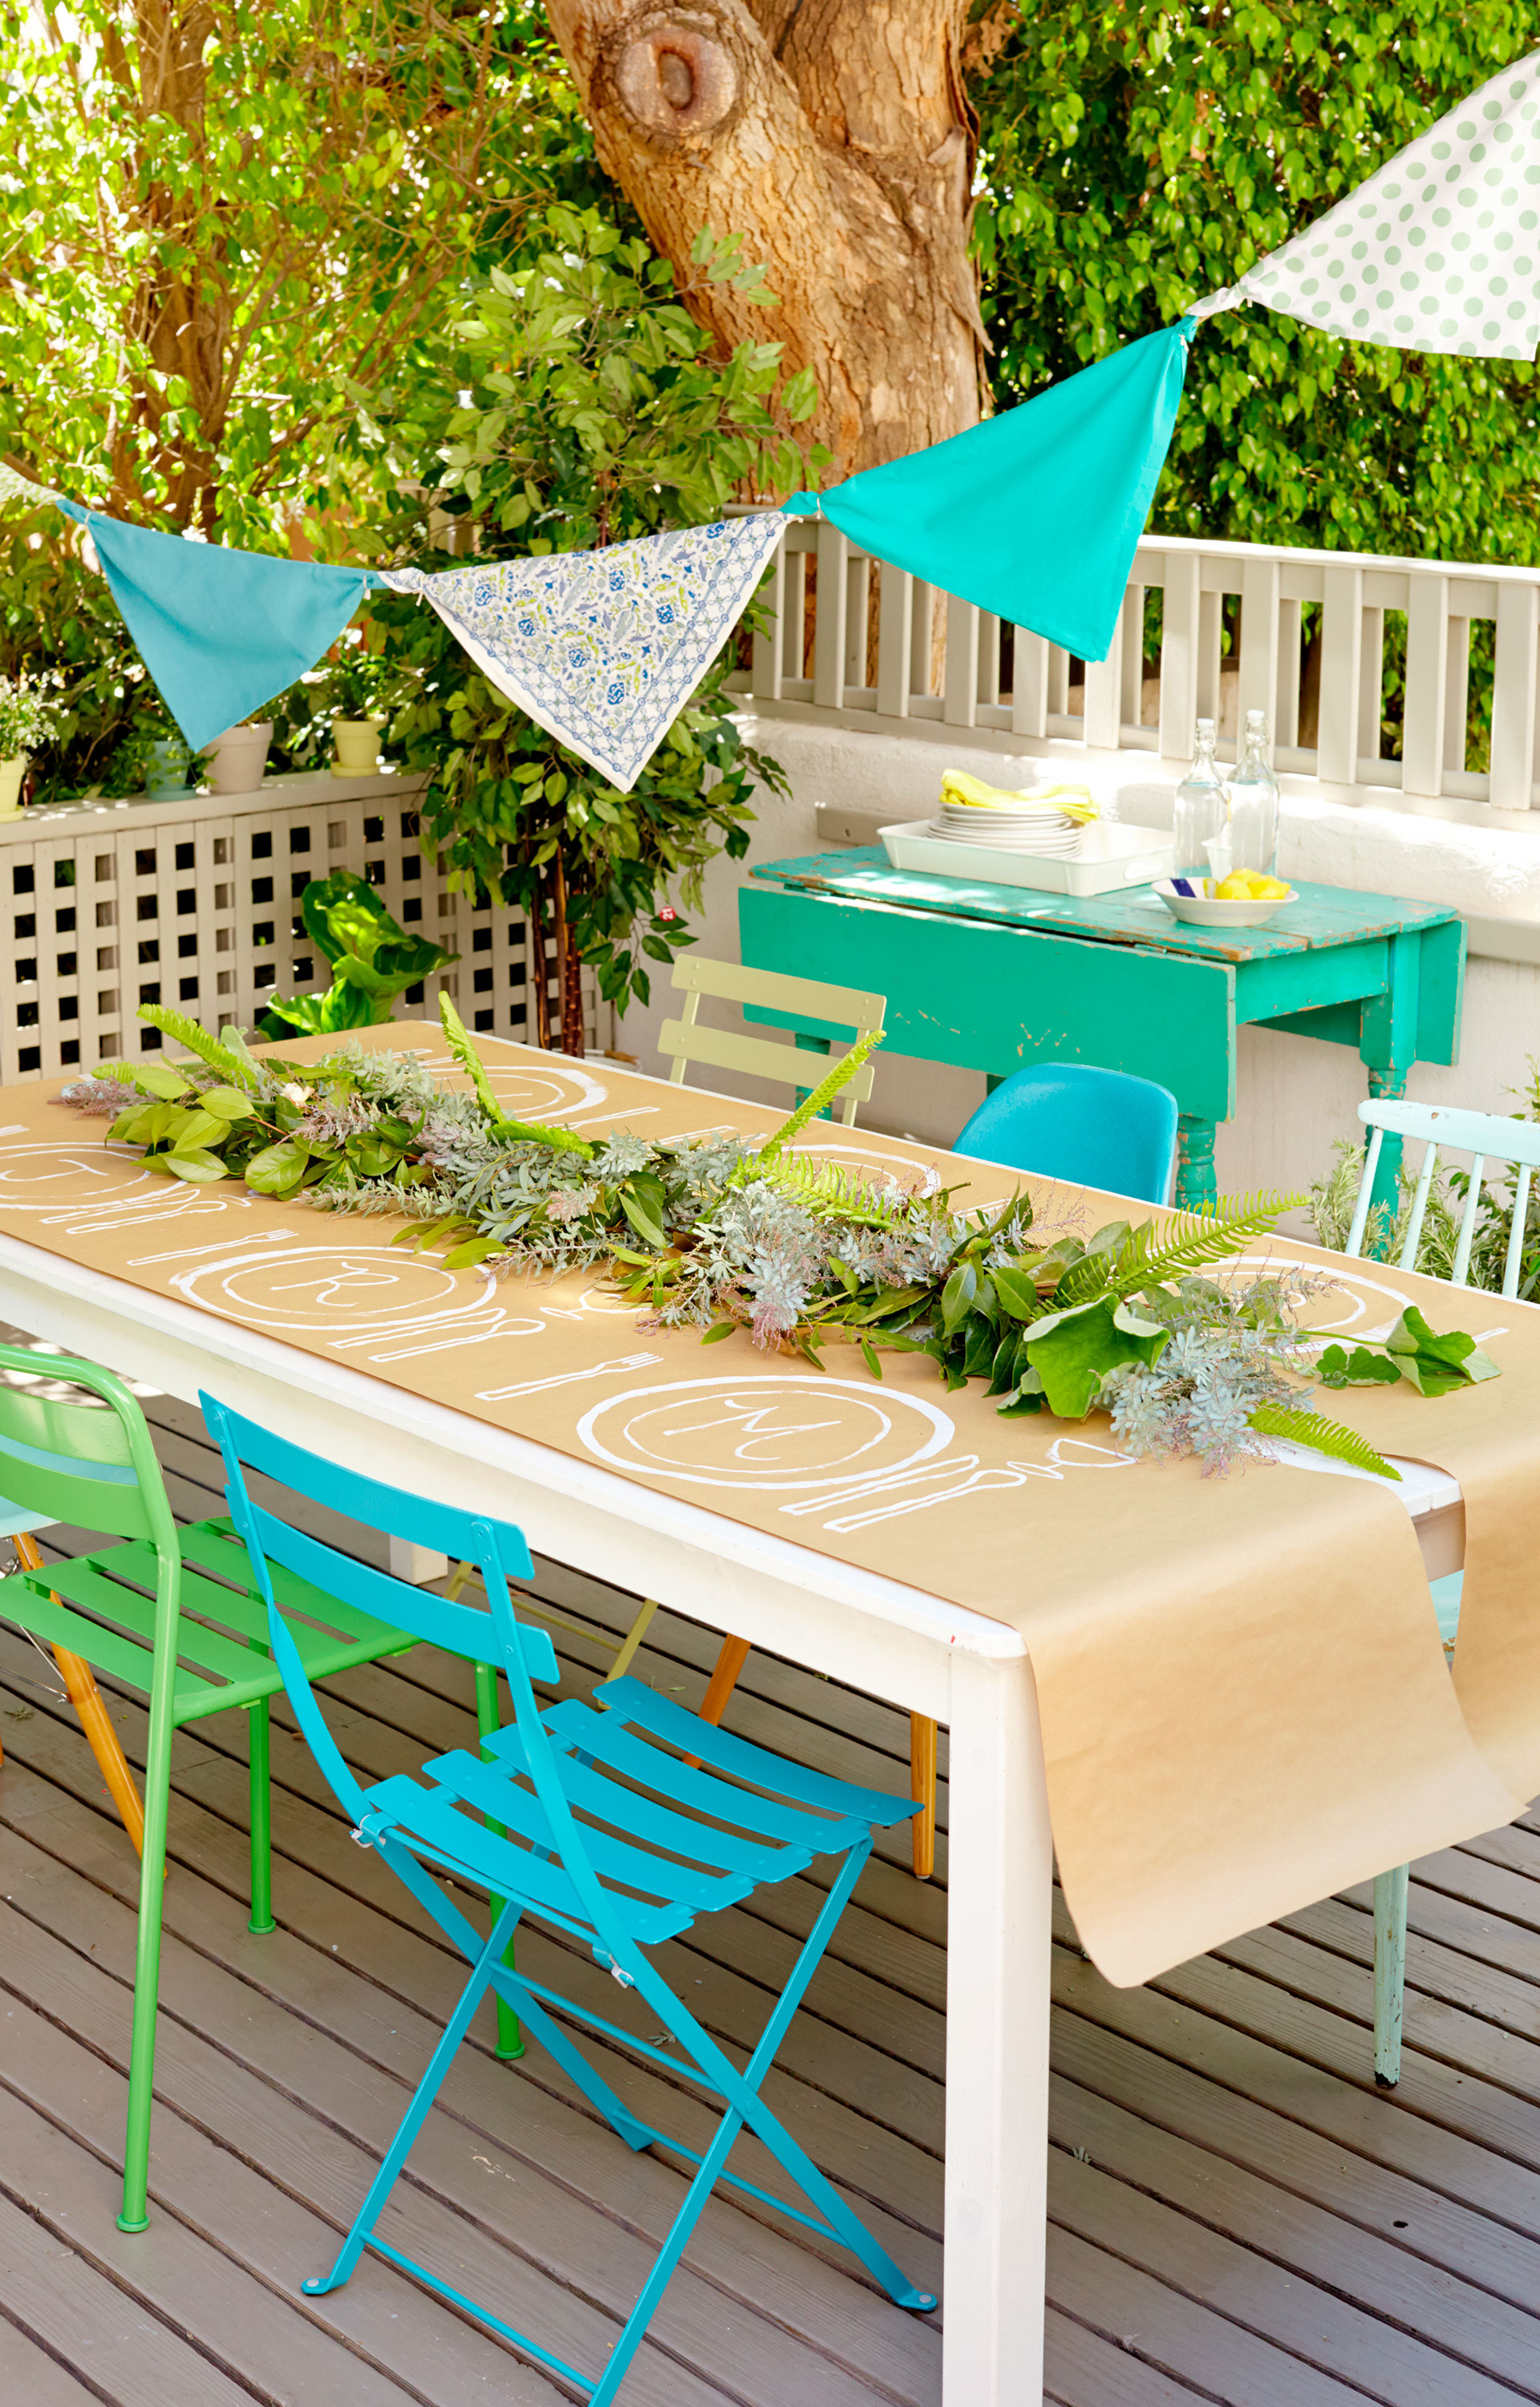 Backyard party ideas and decor summer entertaining ideas for Backyard party decoration ideas